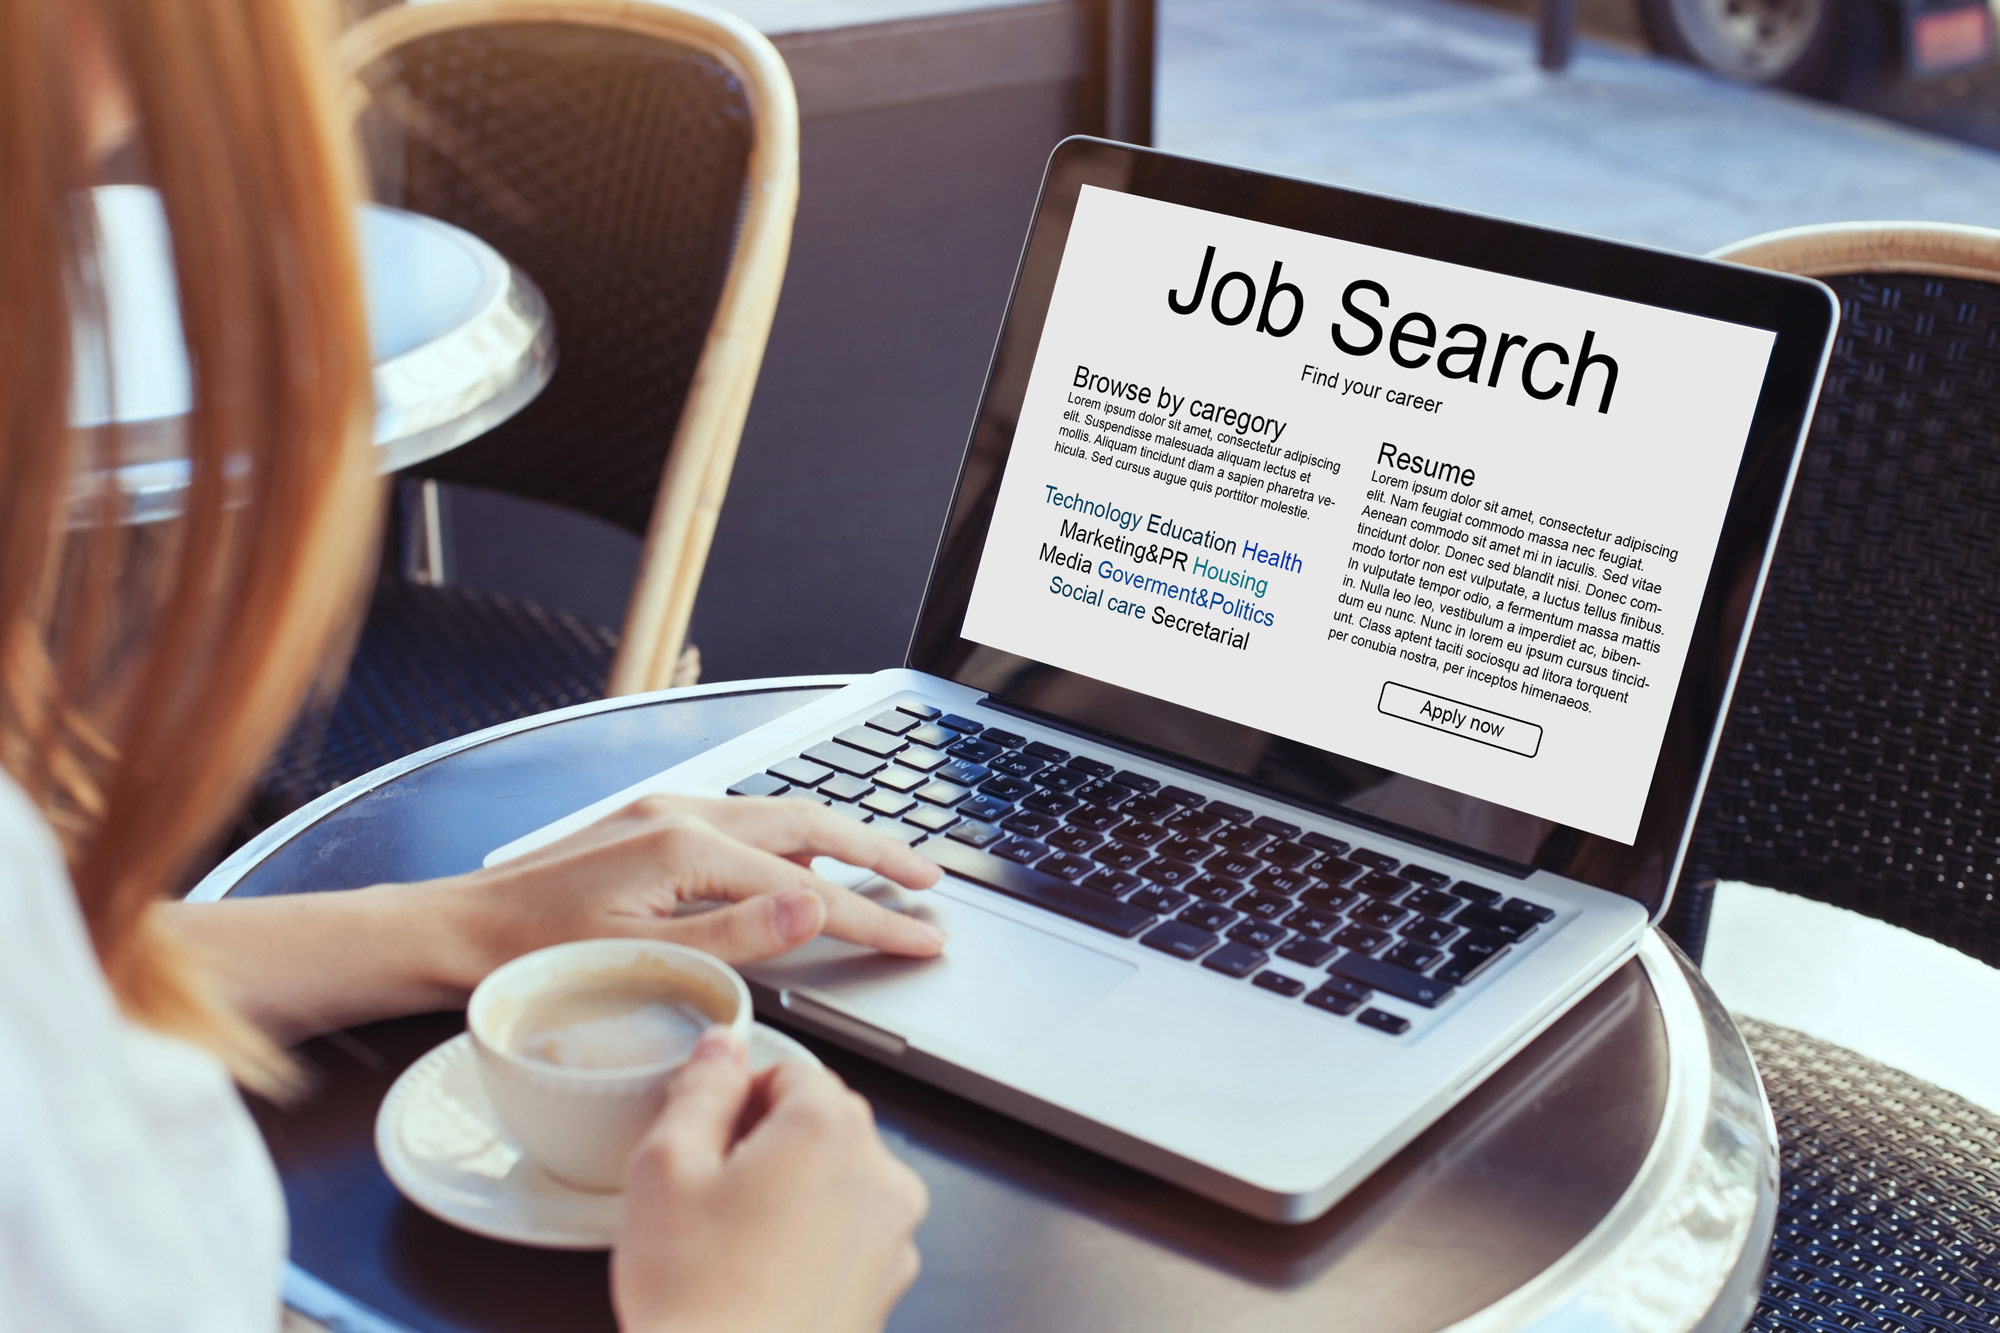 Image of person on computer searching for a job